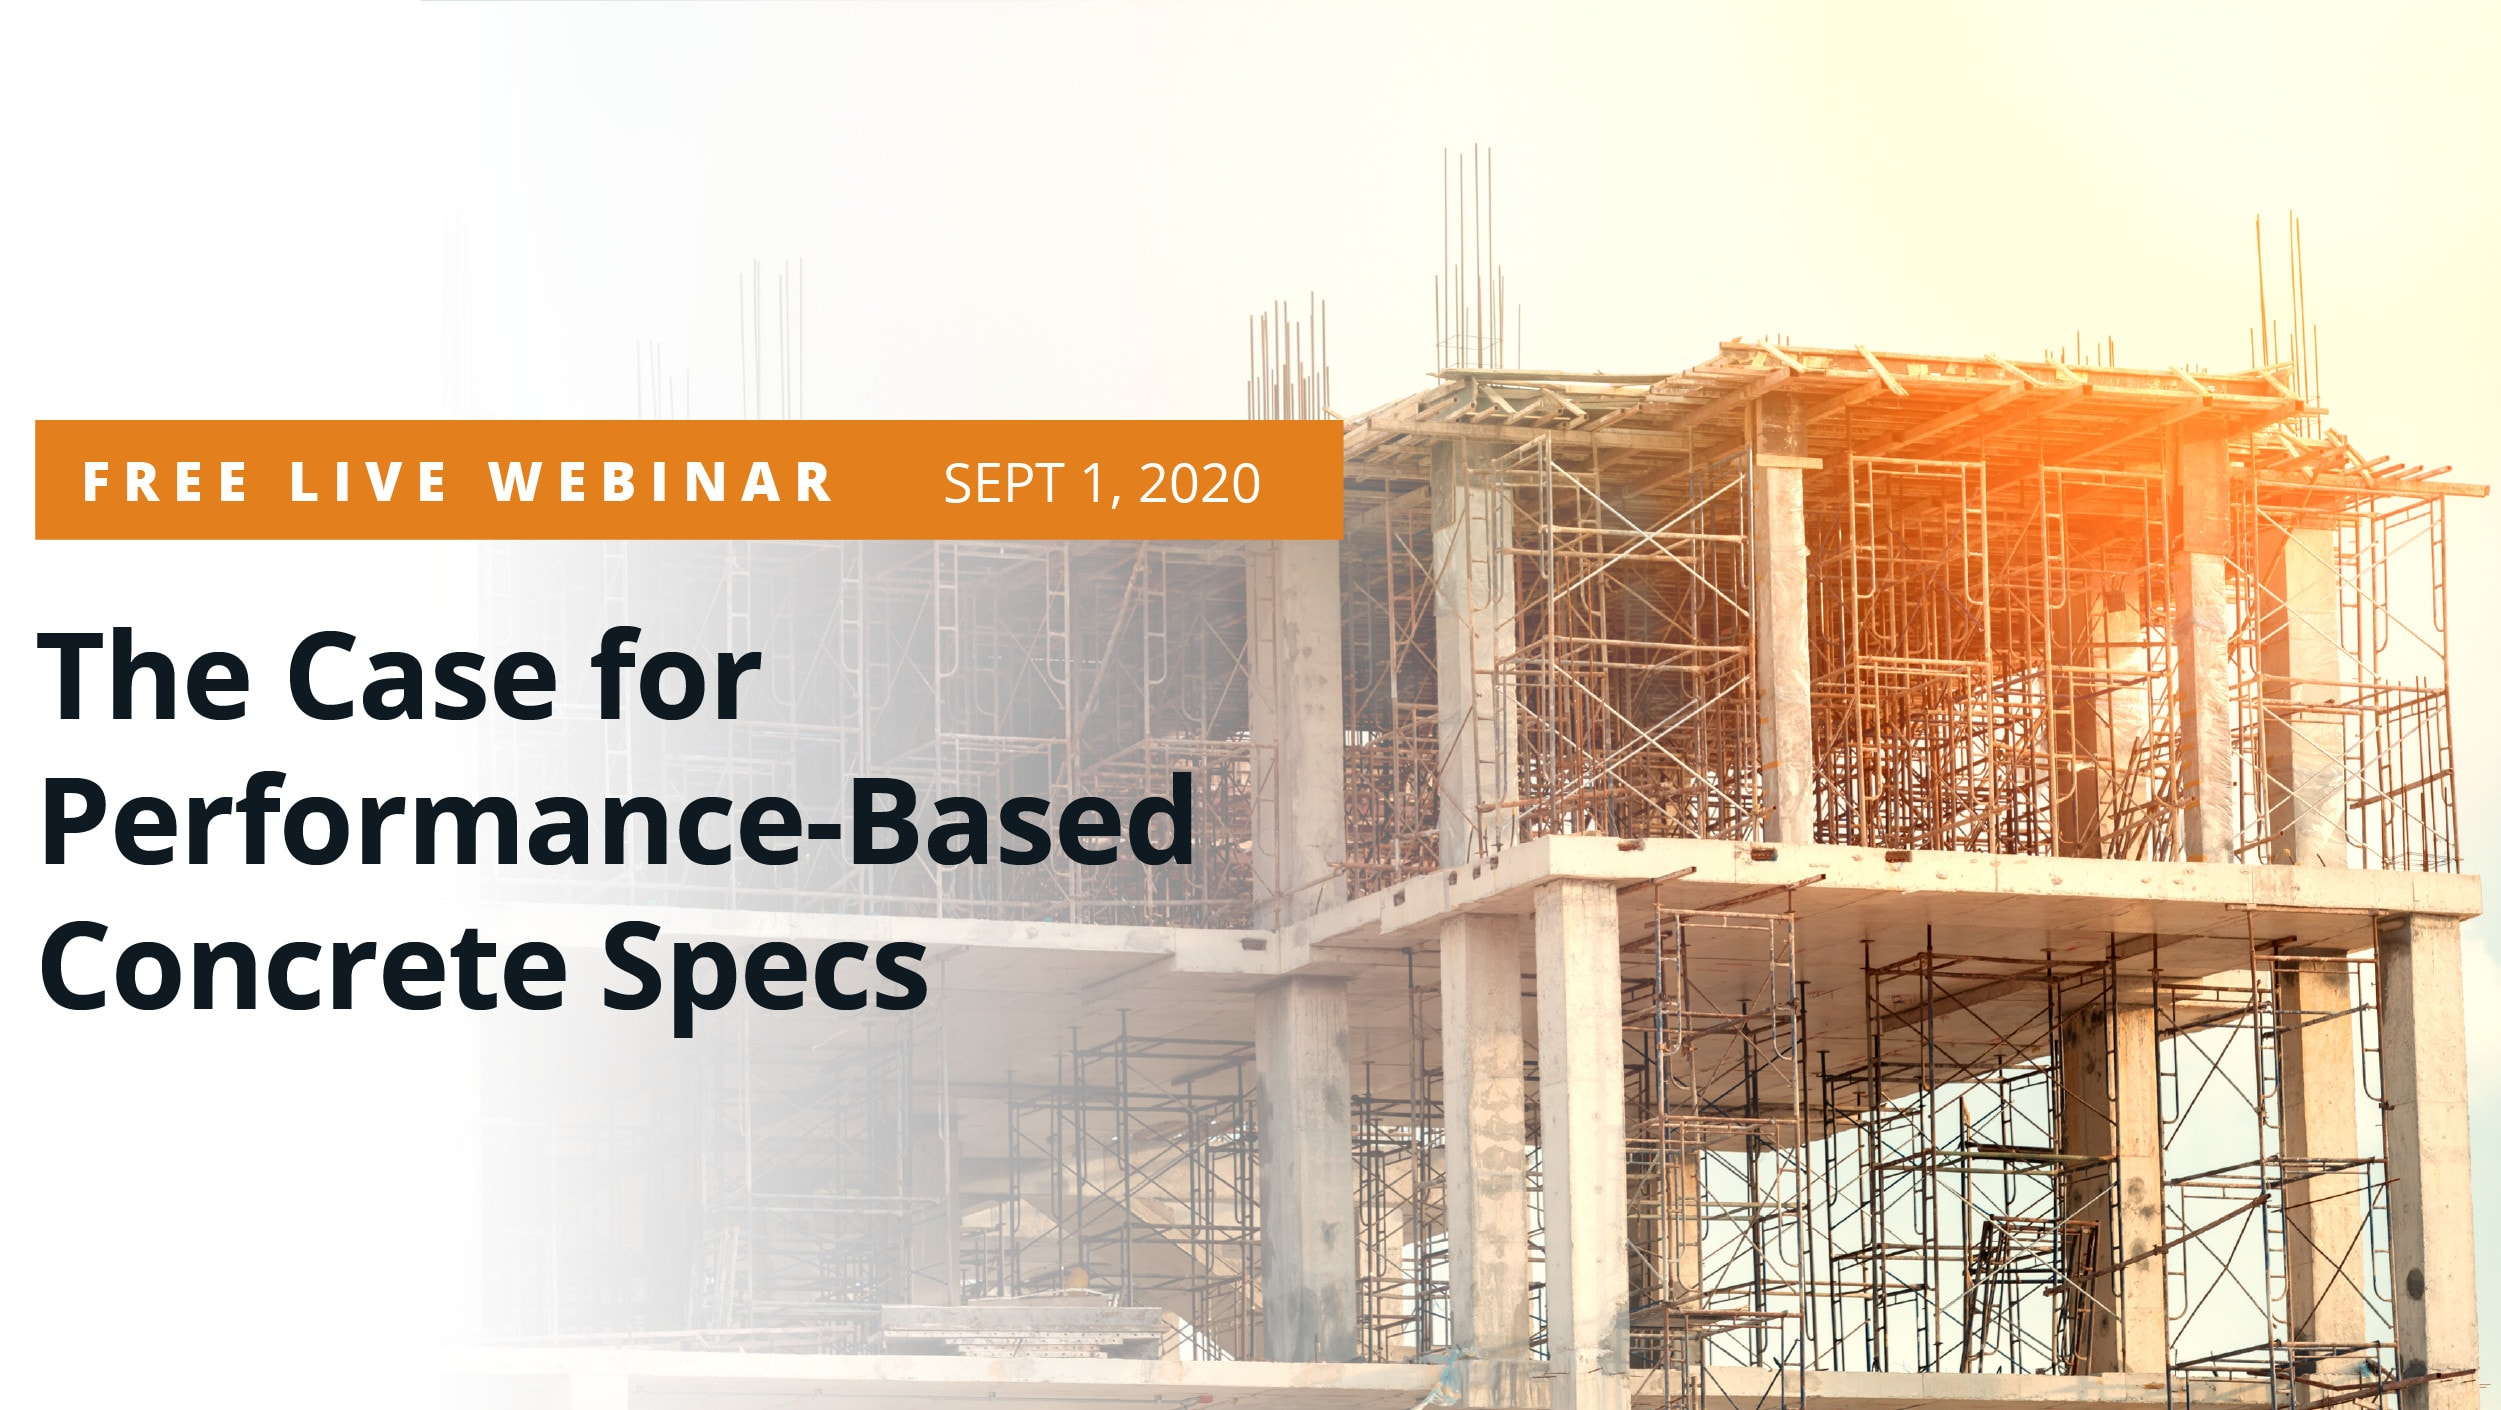 The Case for Performance-Based Concrete Specs